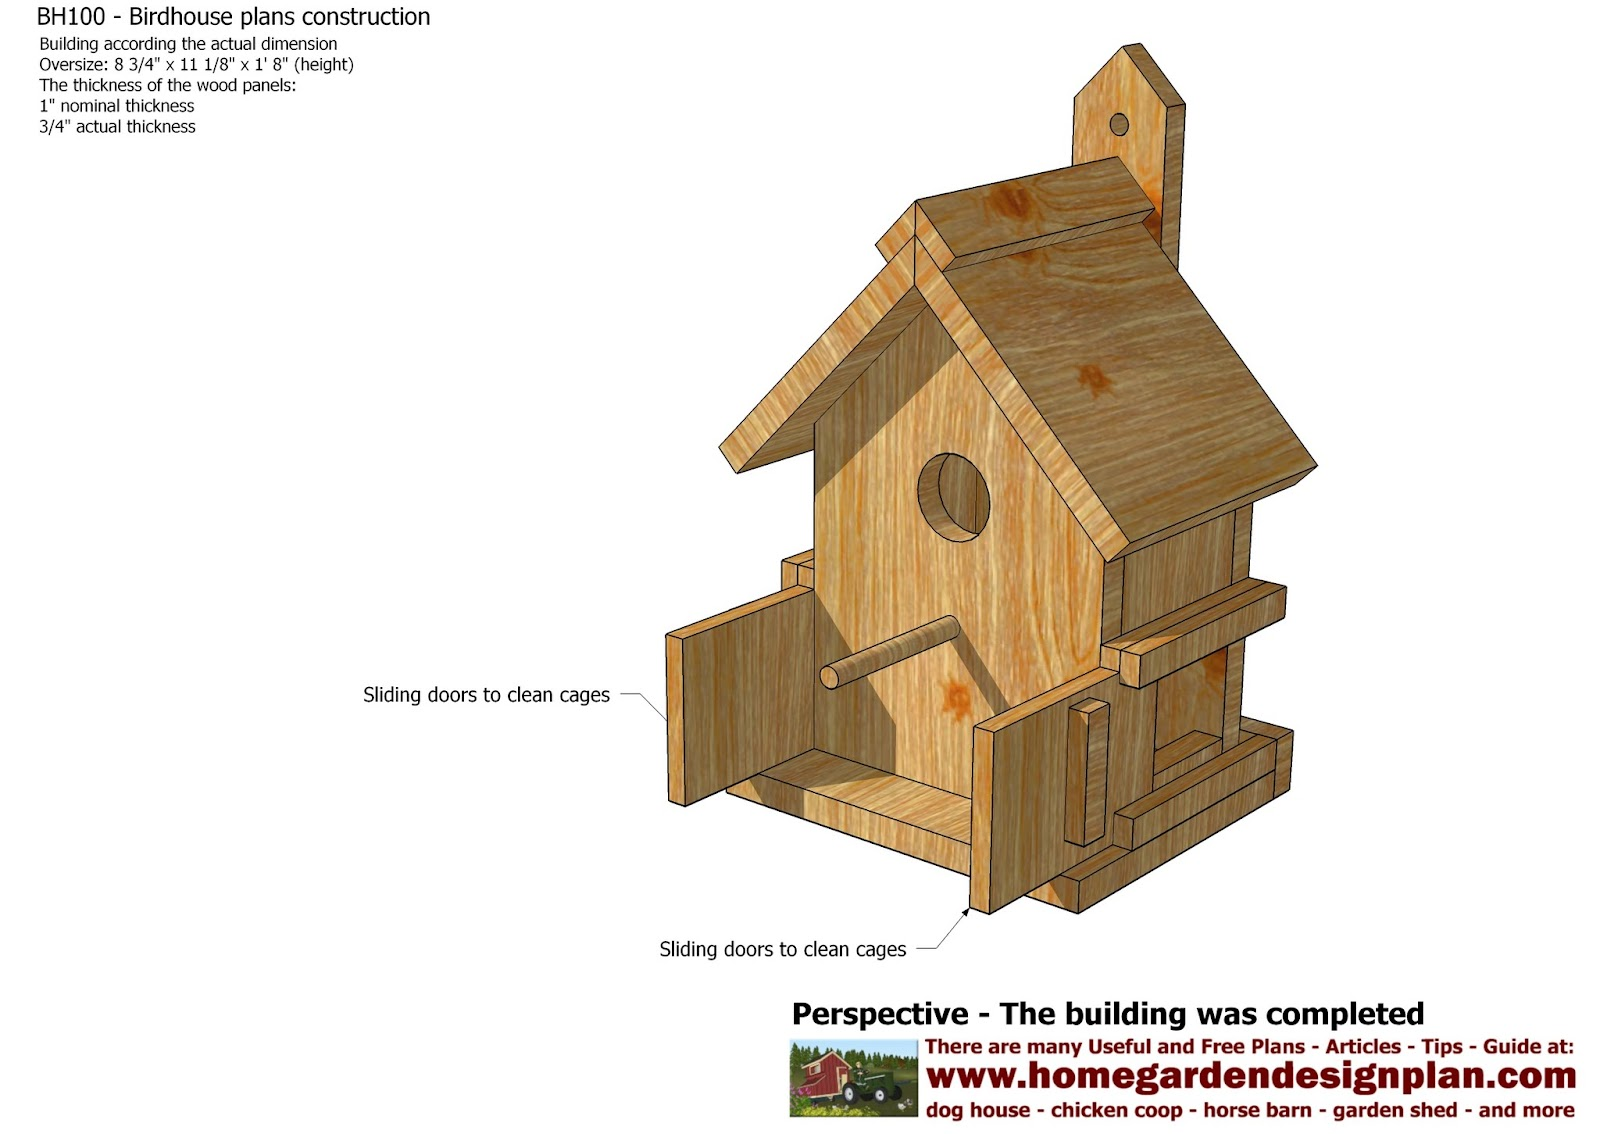 Pdf diy buy birdhouse plans download birch ply wood for Simple diy birdhouse plans